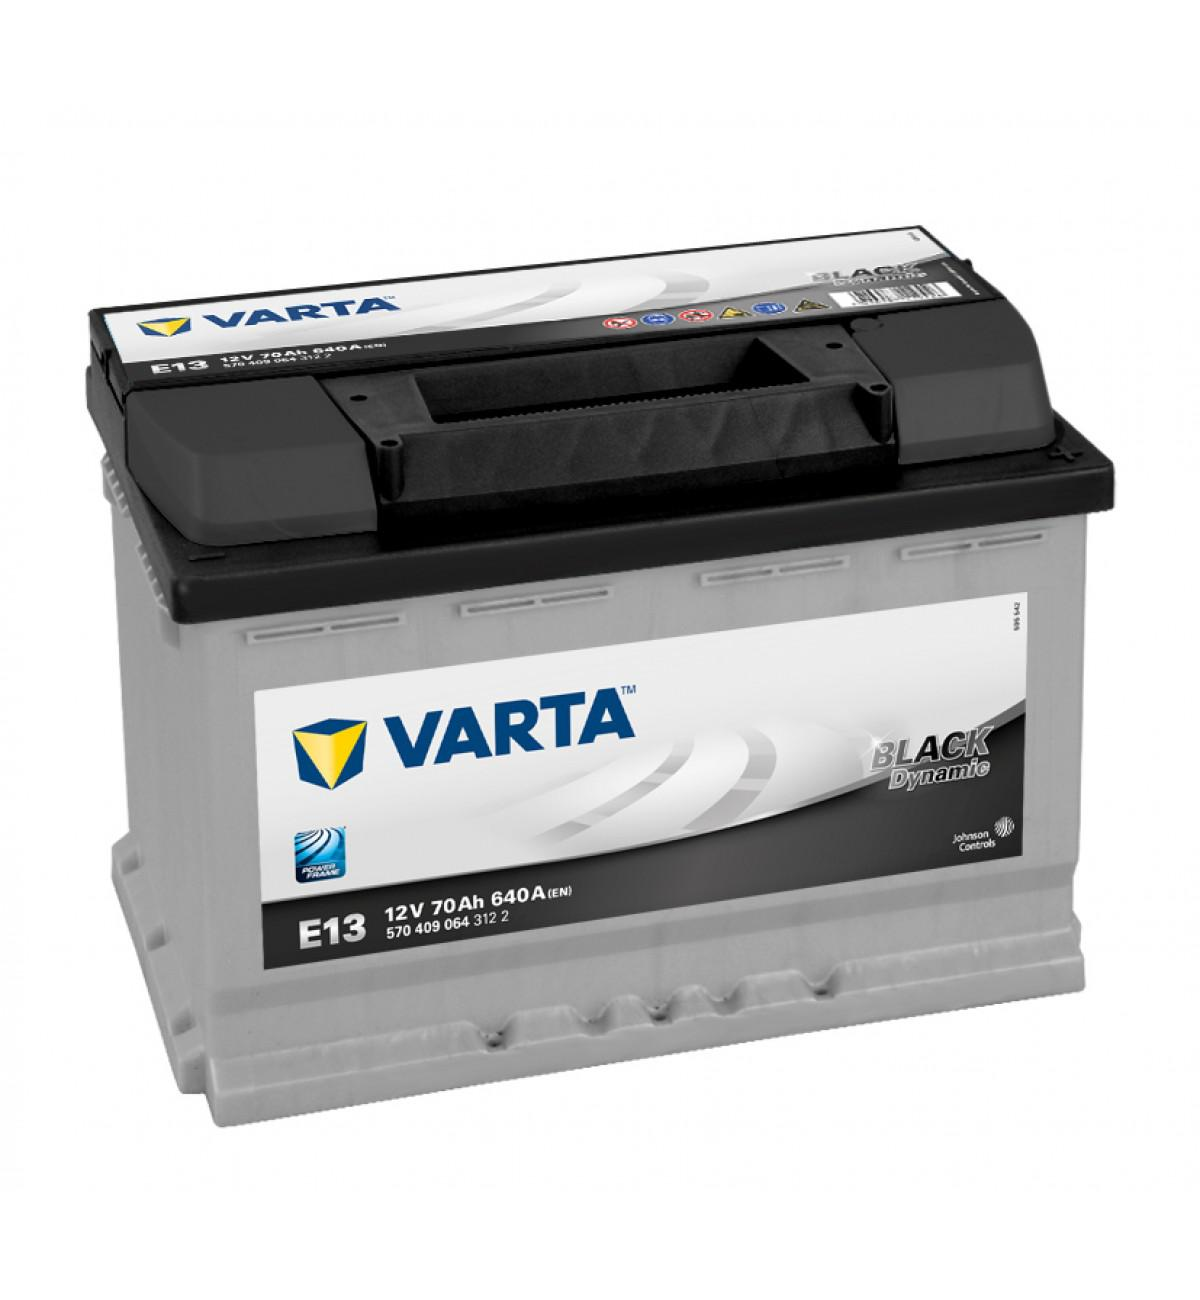 varta e13 652 12v 70ah car batteries r1699 midrand public ads parts accessories. Black Bedroom Furniture Sets. Home Design Ideas